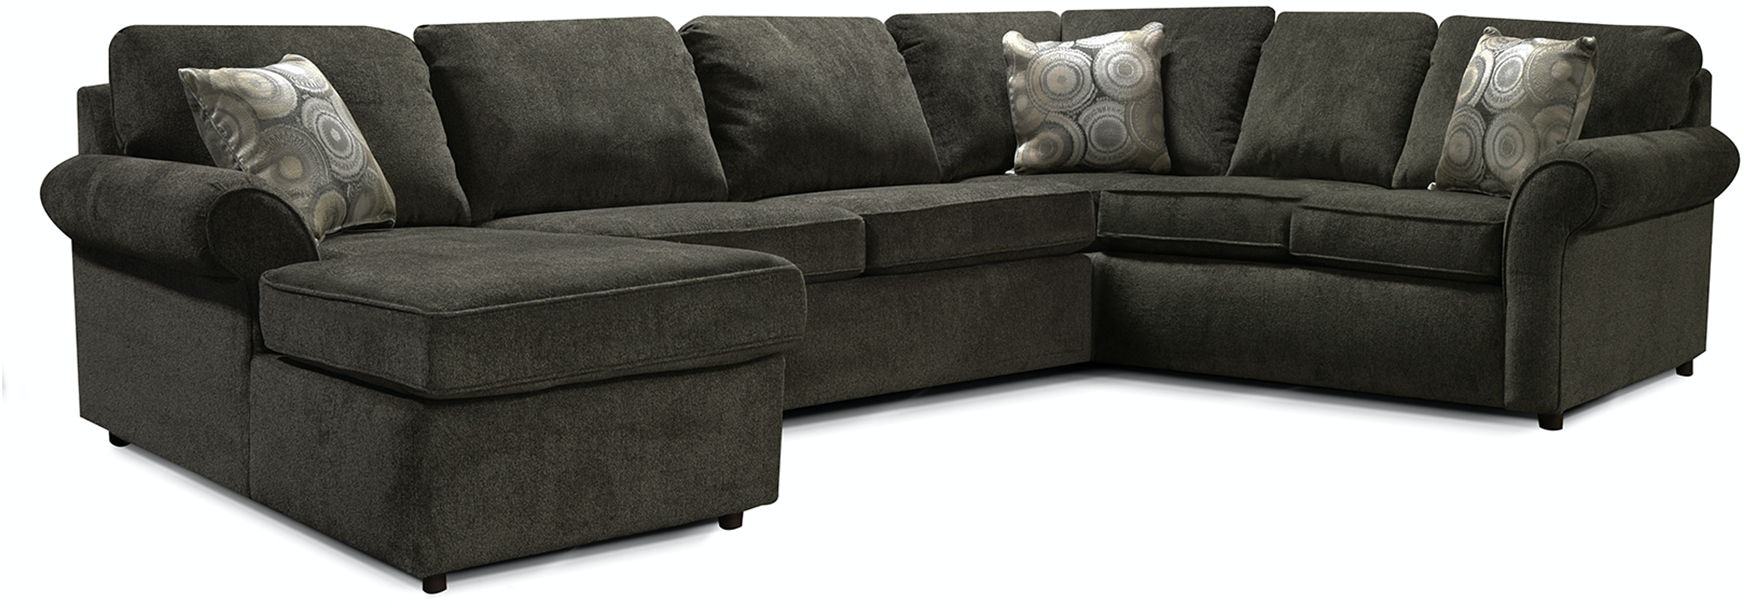 England Living Room Malibu Sectional 2400 Sect England Furniture